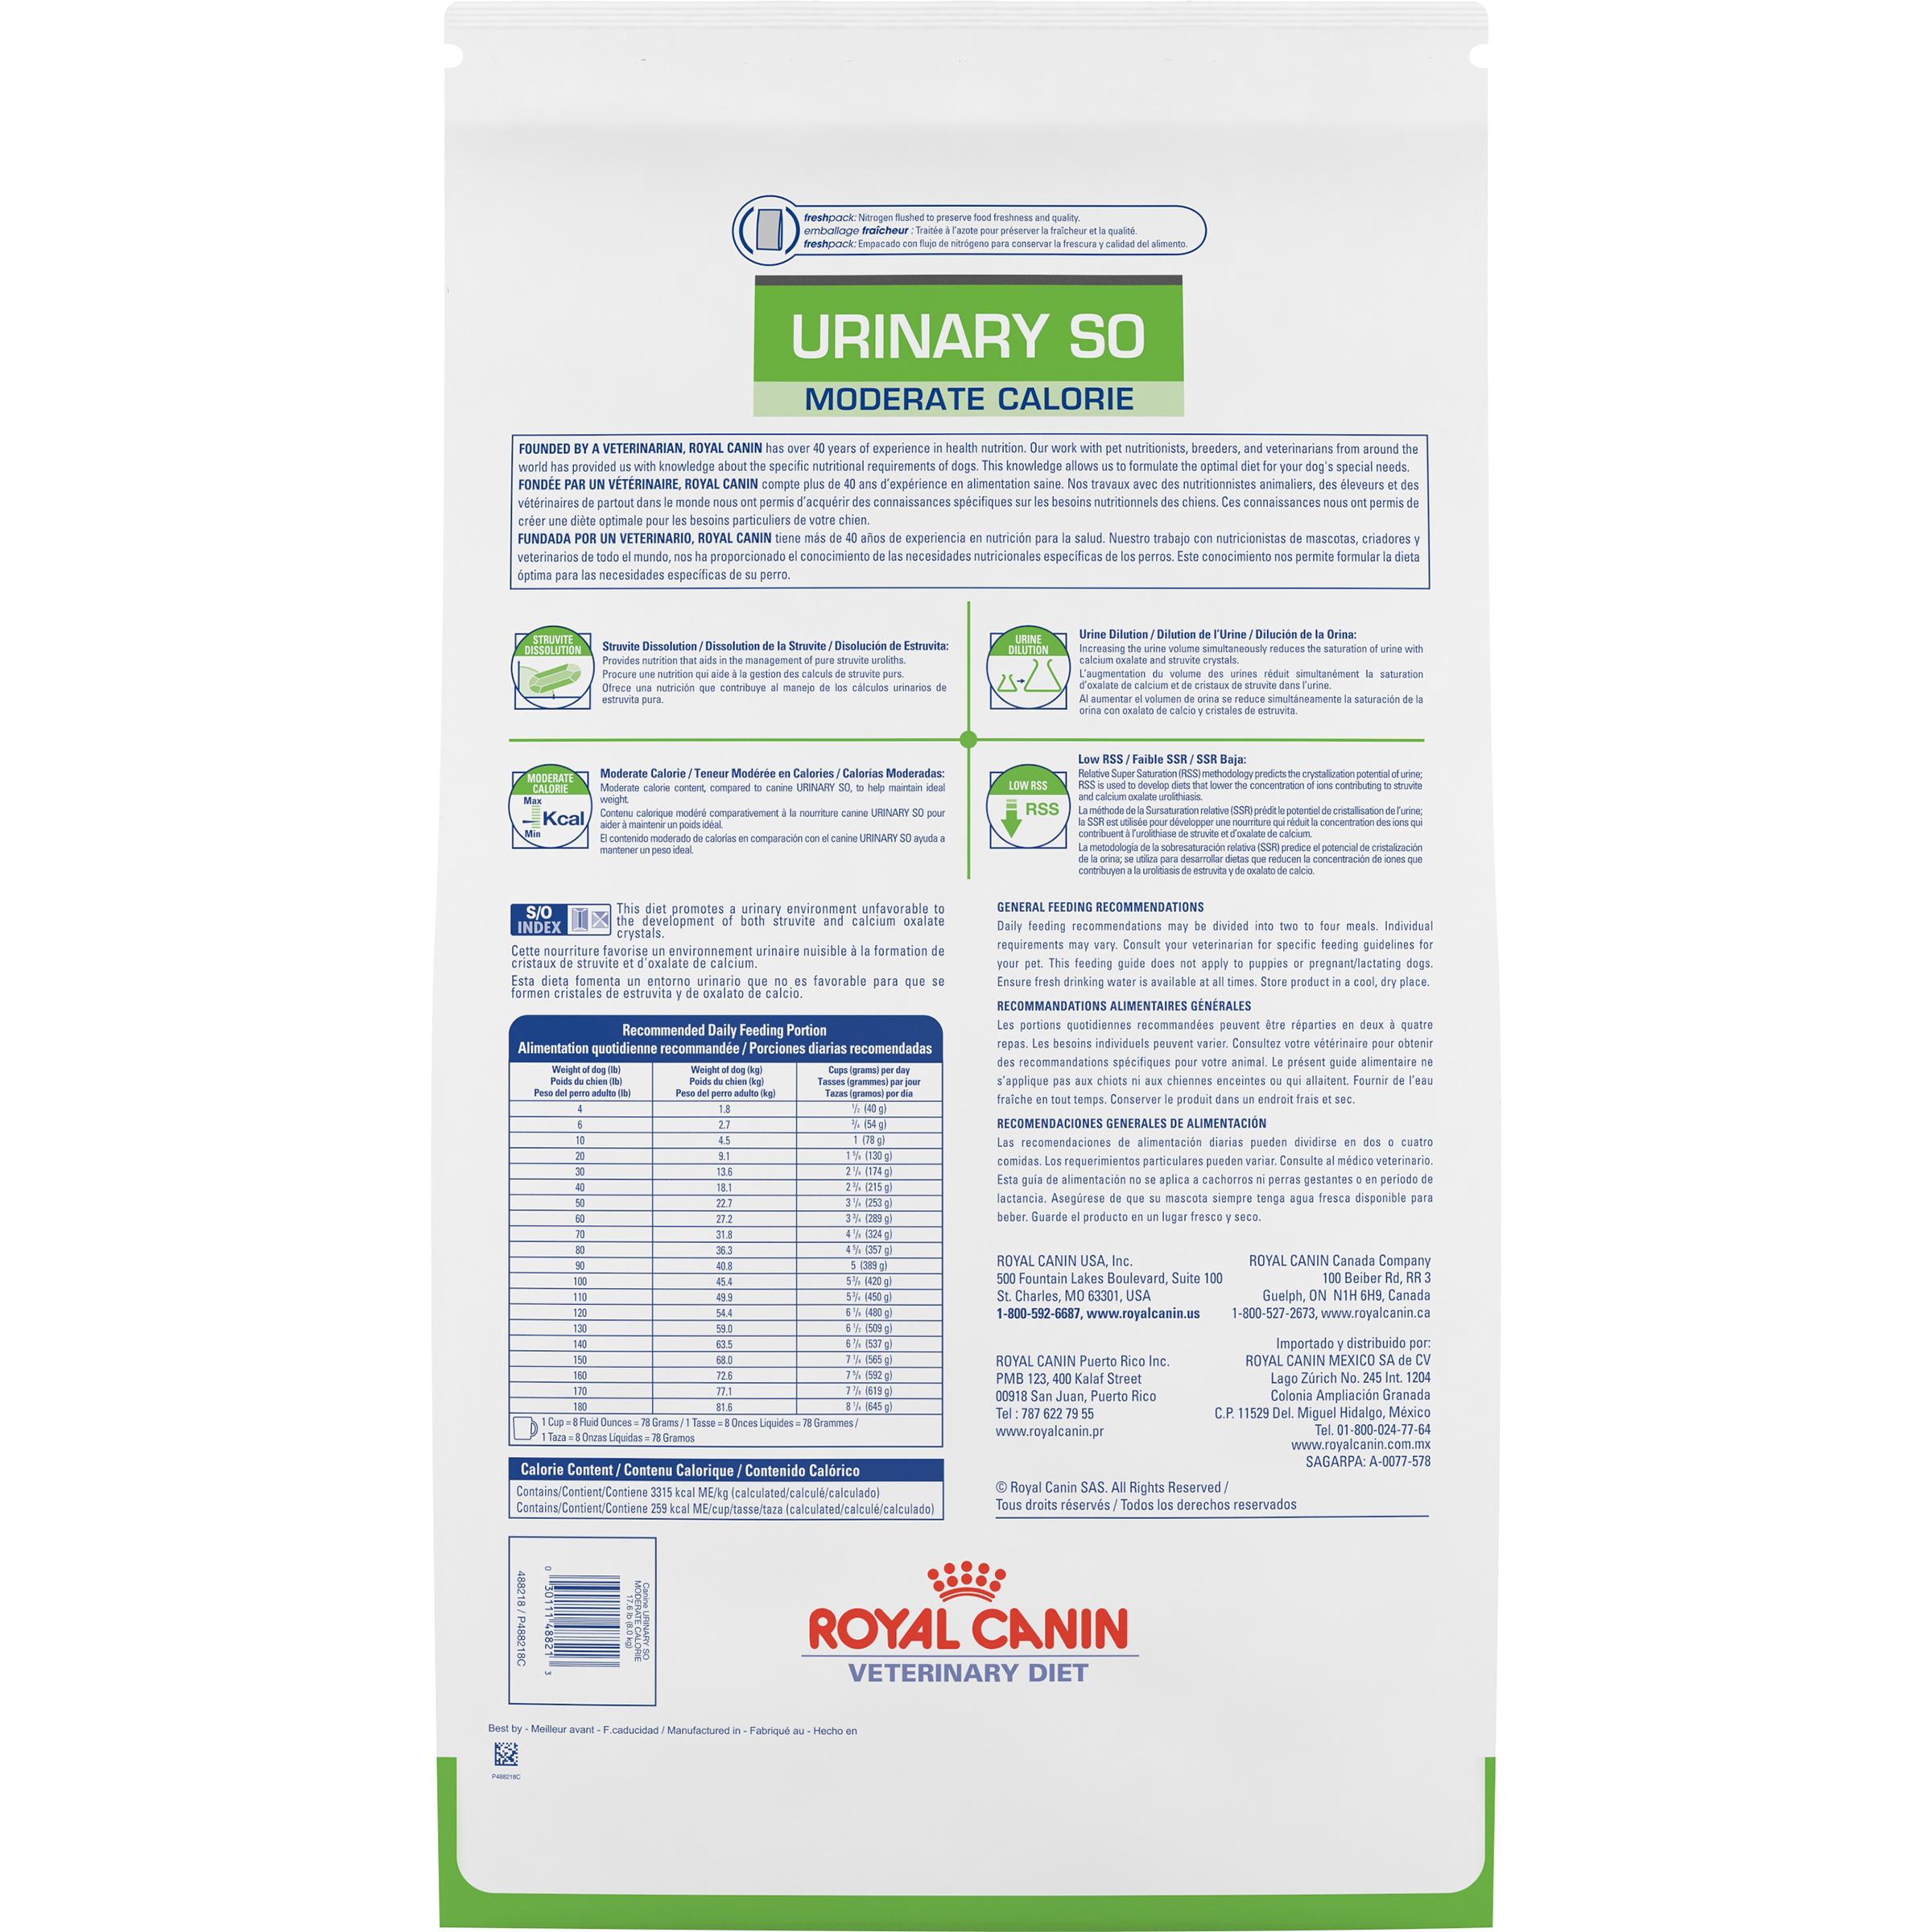 Royal Canin Veterinary Diet Canine Urinary So Moderate Calorie Dry Dog Food